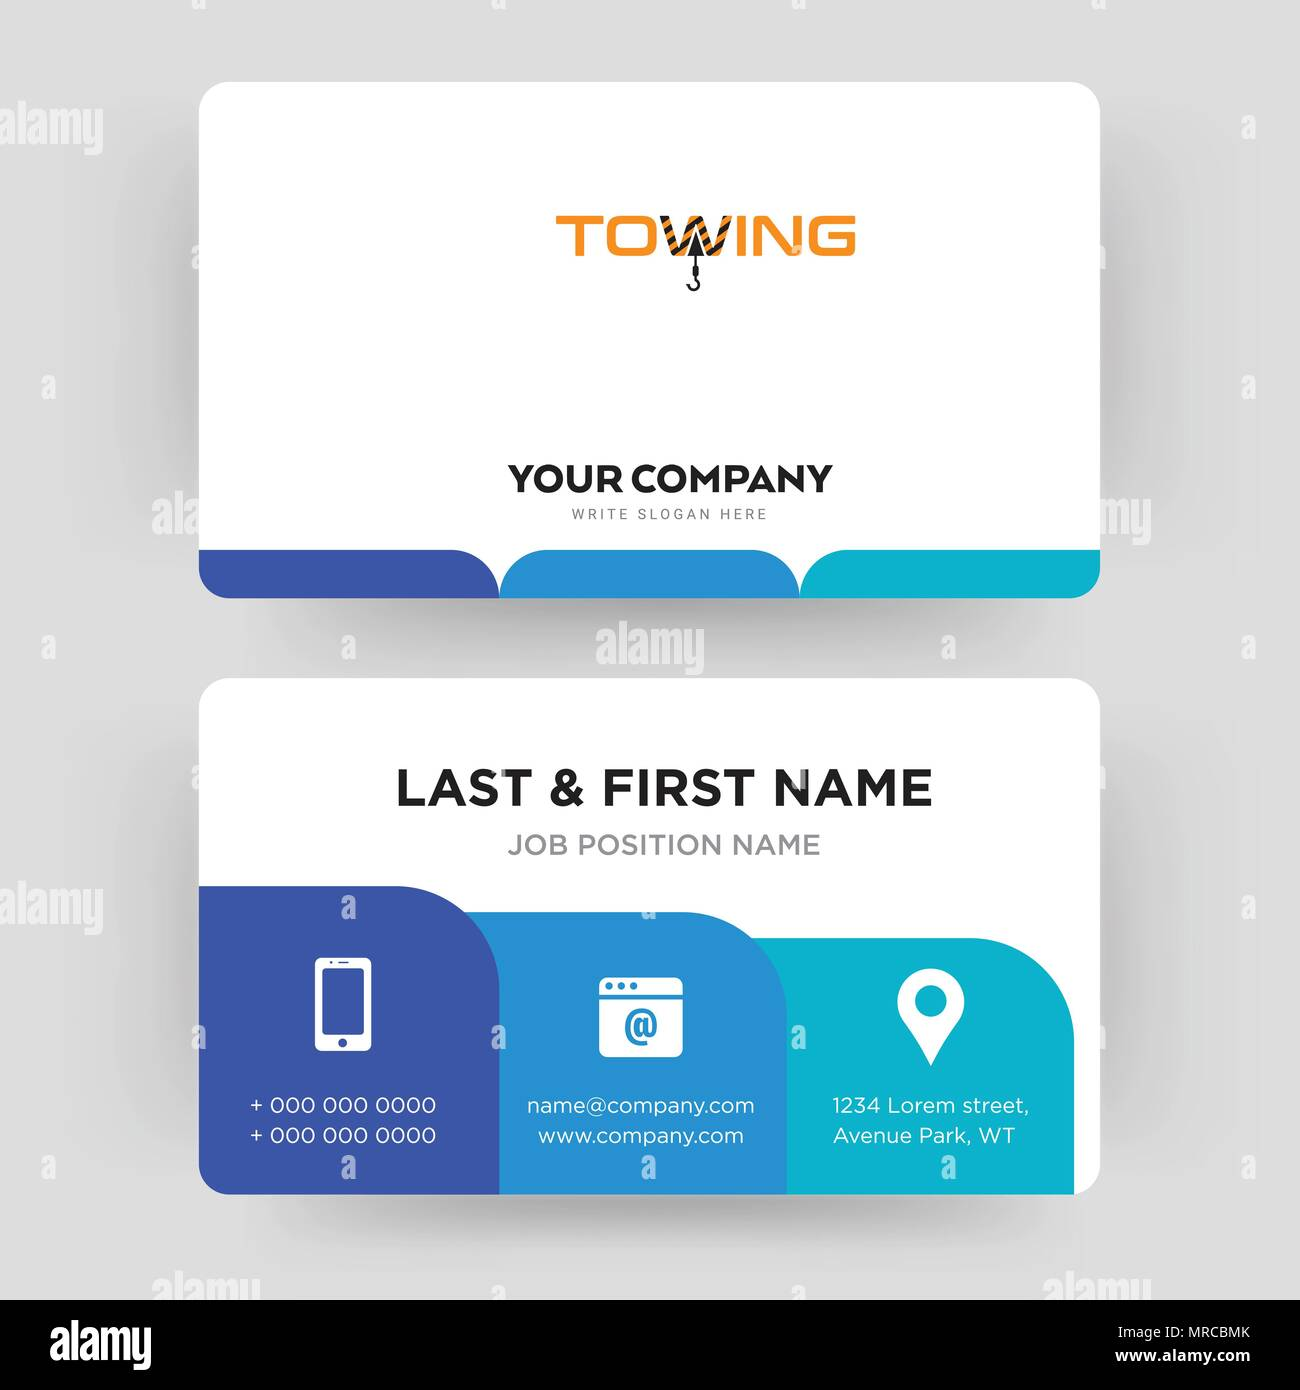 Towing business card design template visiting for your company towing business card design template visiting for your company modern creative and clean identity card vector colourmoves